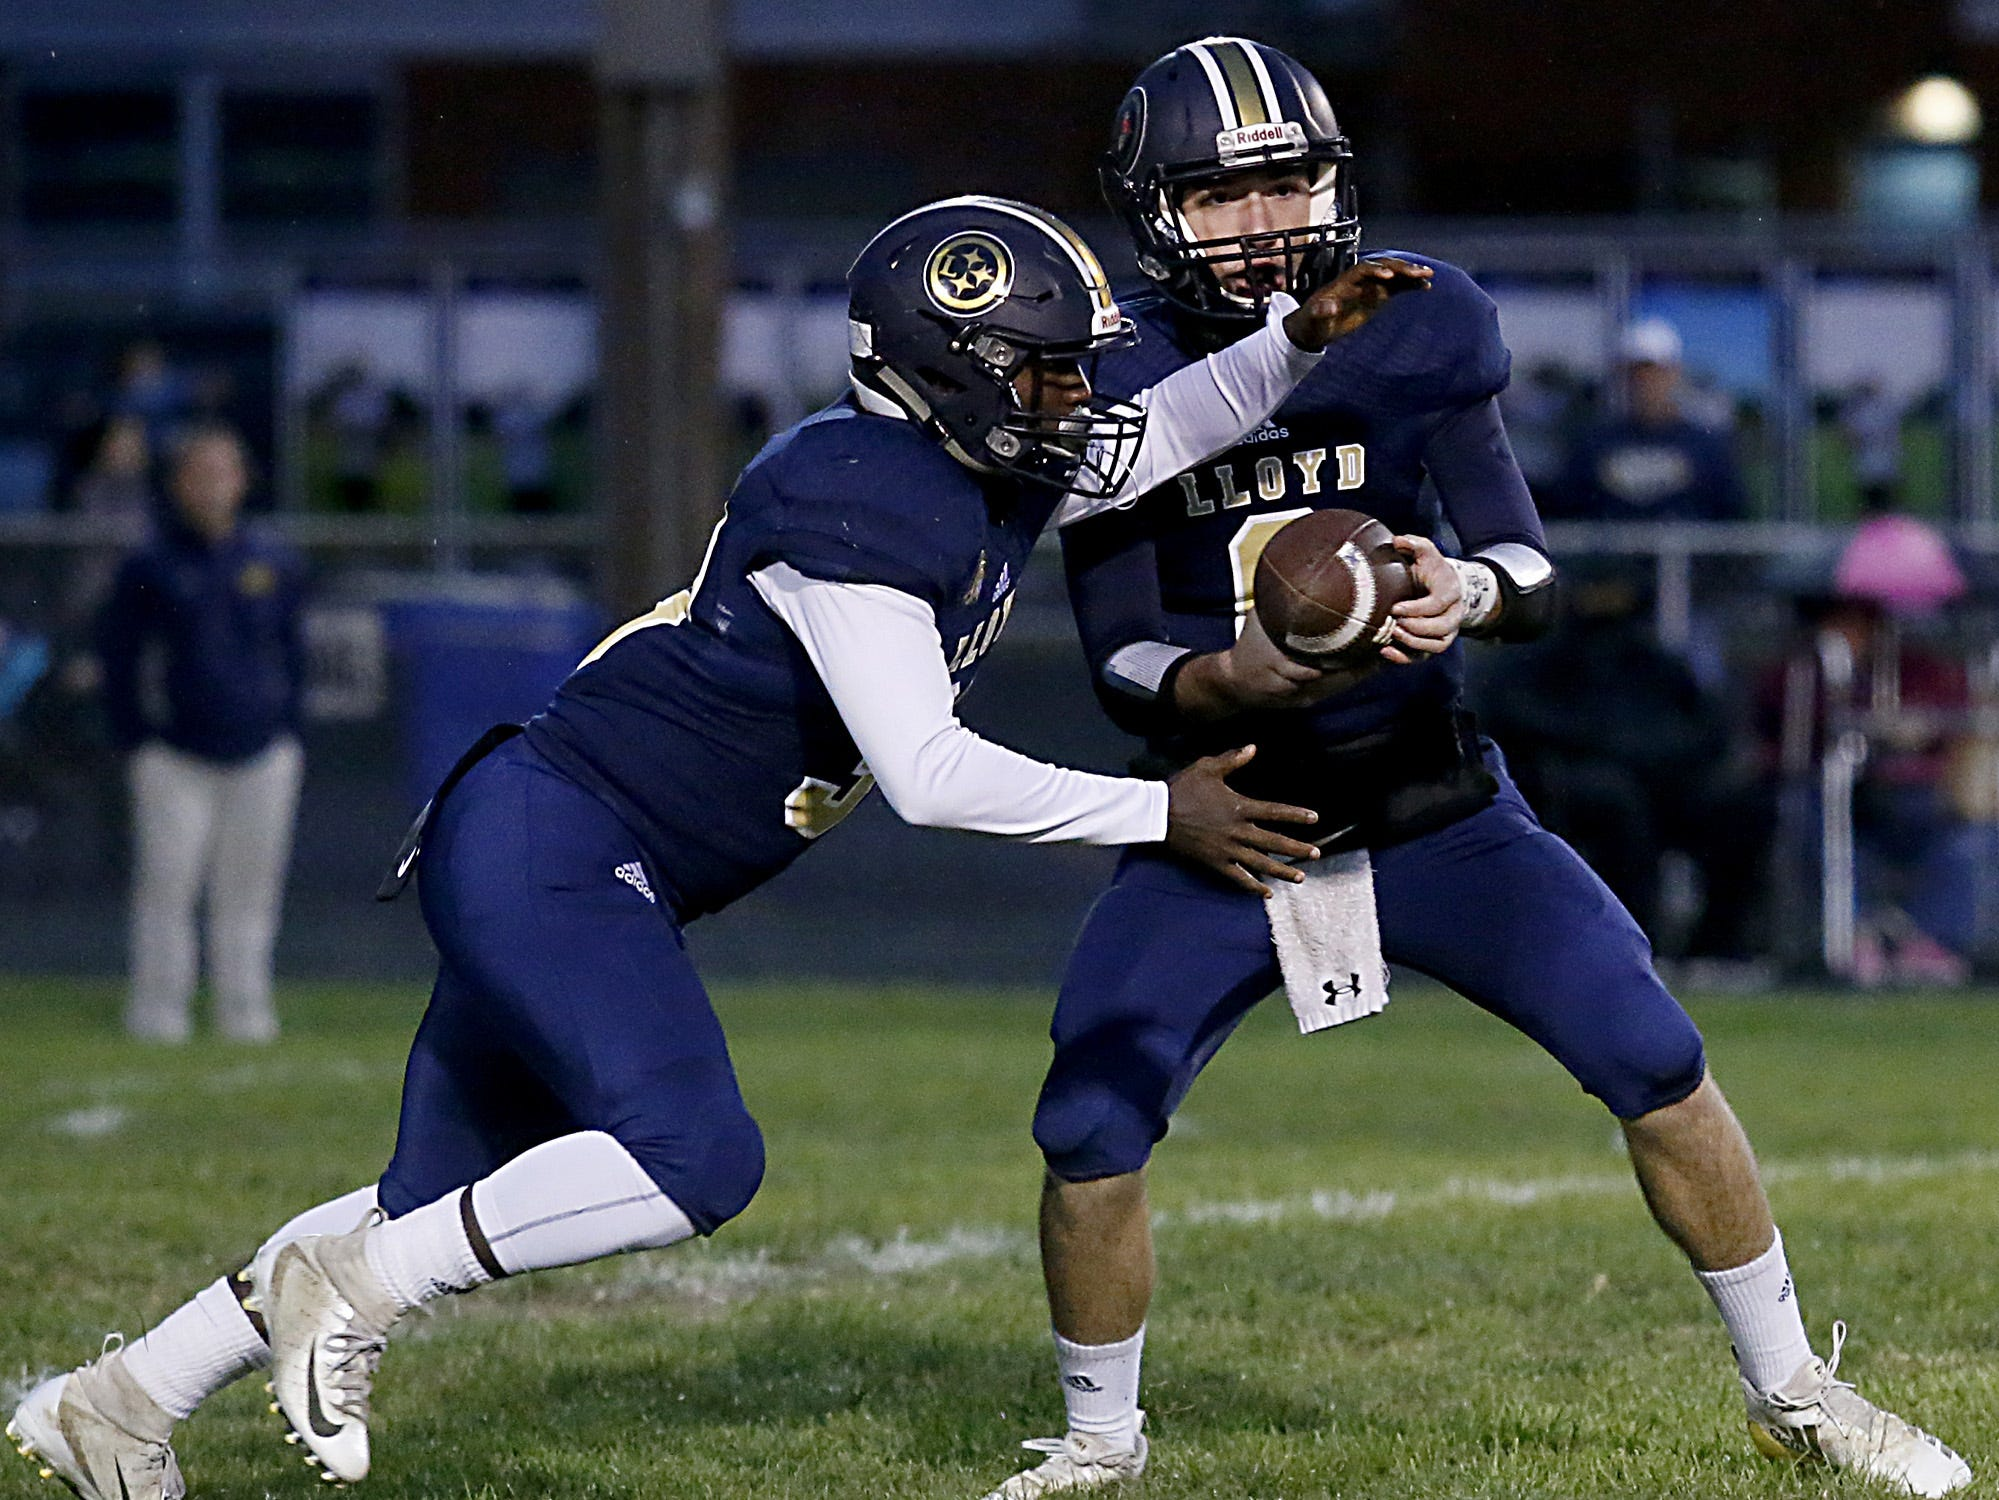 Lloyd Memorial quarterback Dakota Thiel hands off to Travon Mason during their game against Newport Central Catholic at Cecil Dees Stadium in Erlanger Friday, October 12, 2018.